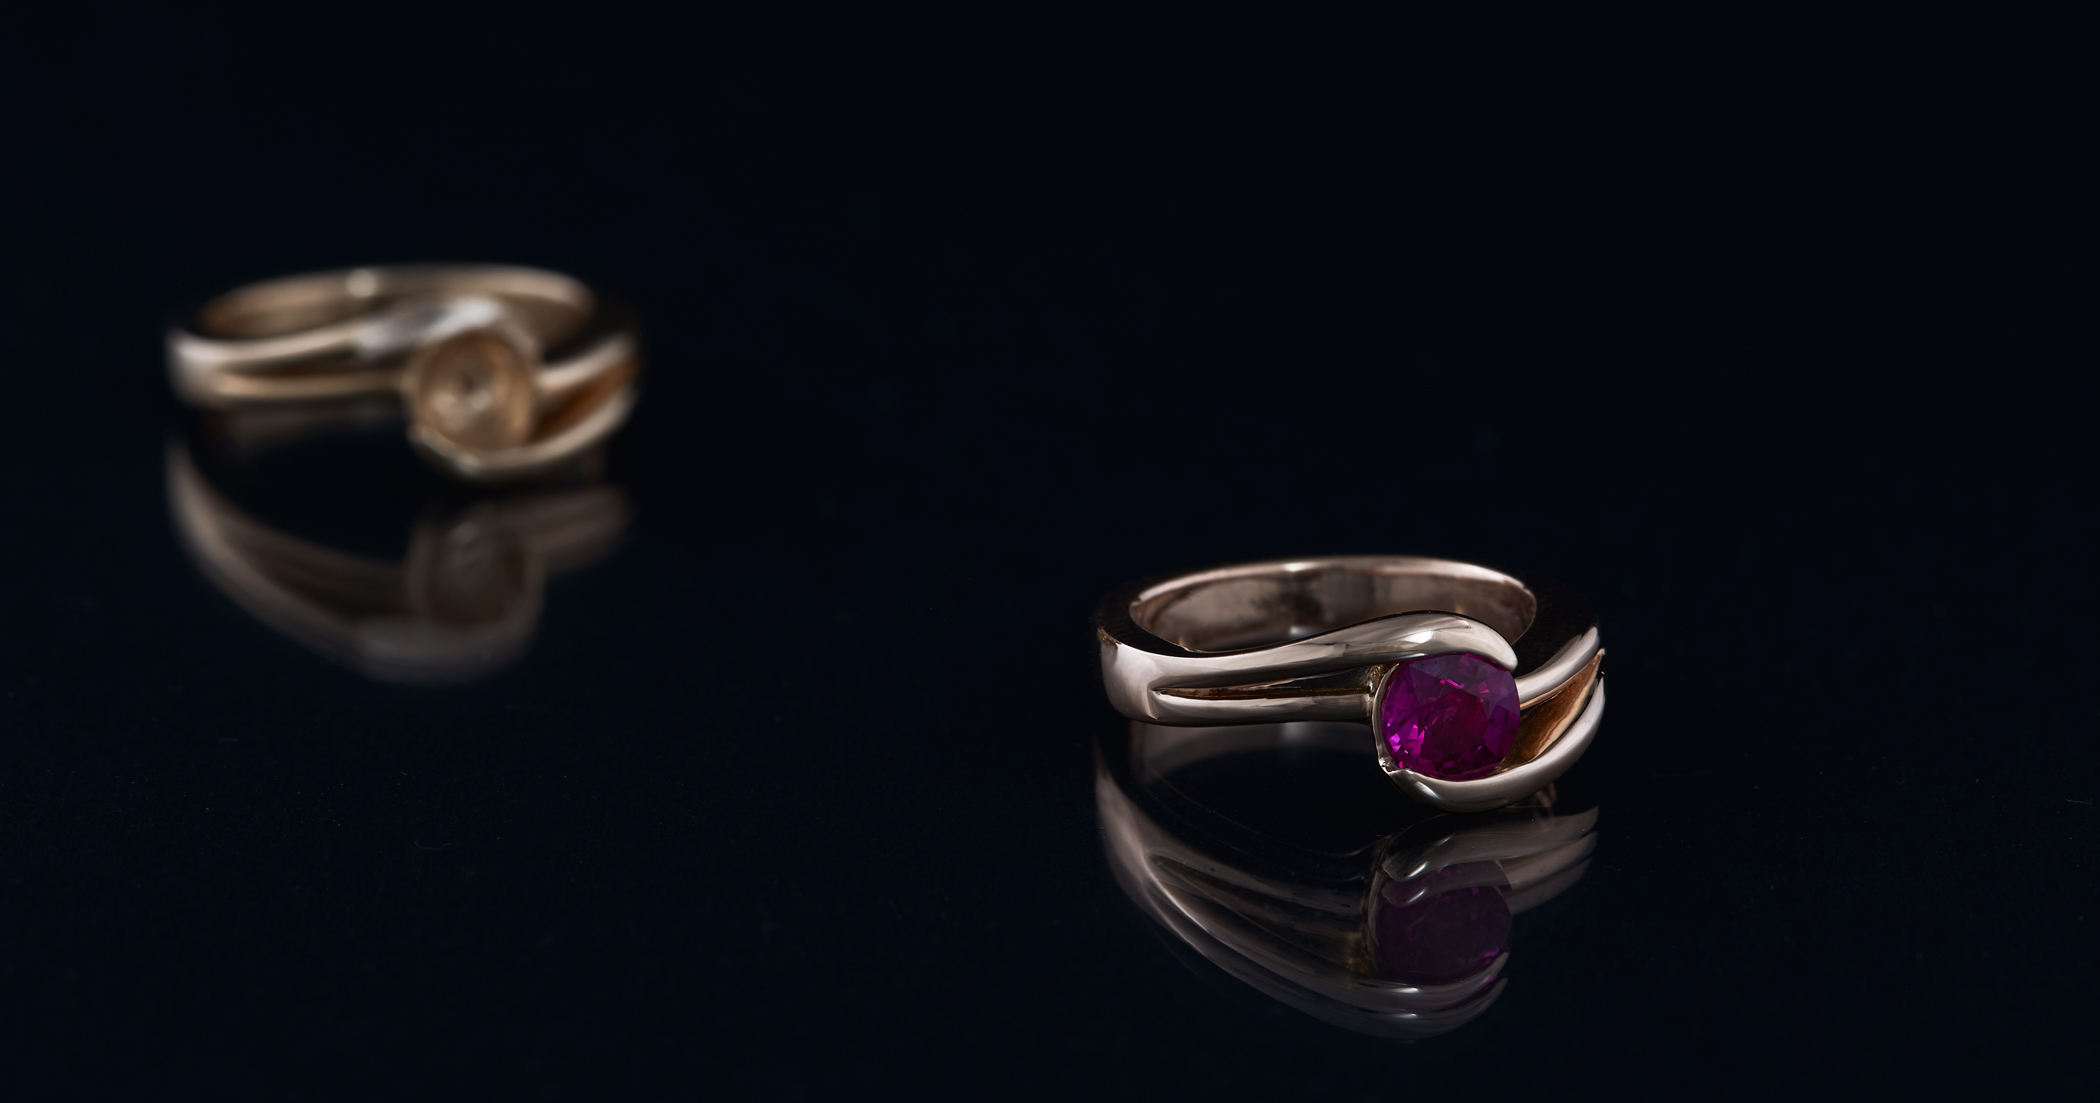 The ring remade with some very slight changes to the correct finger size.